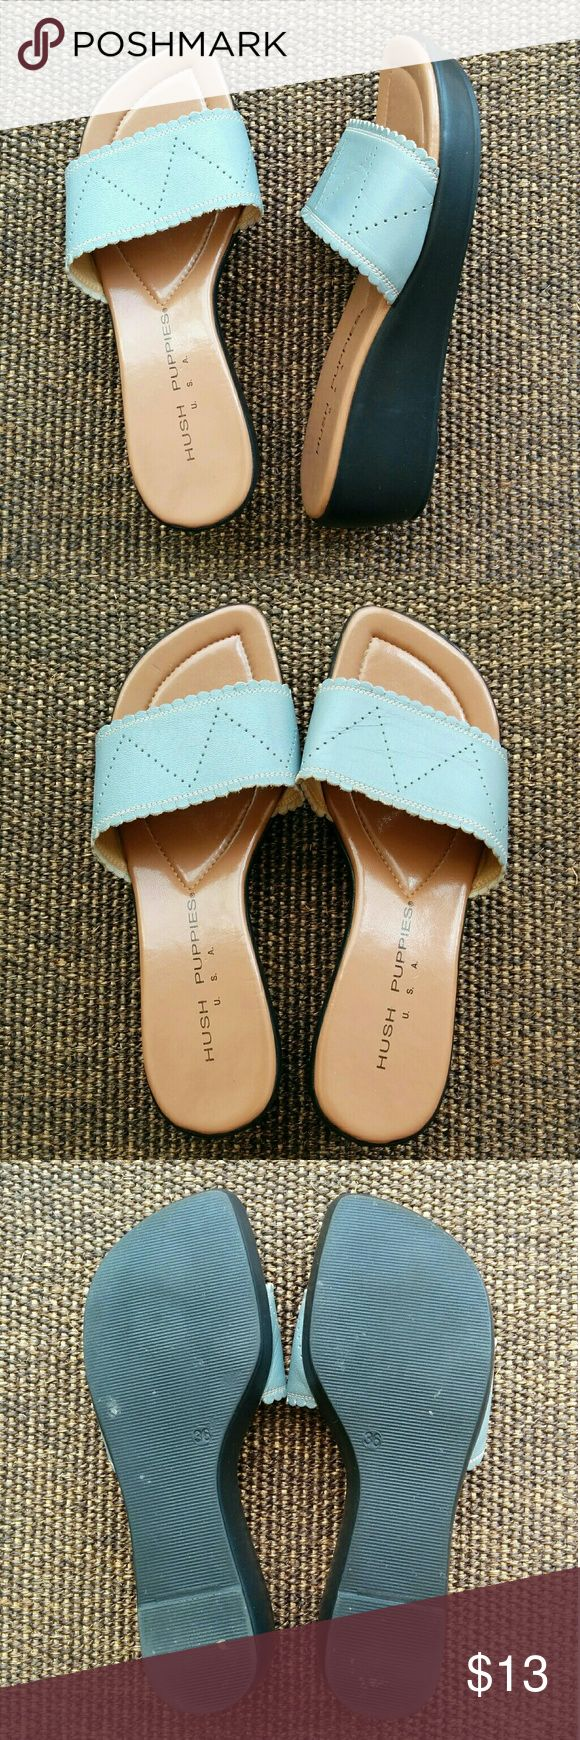 """Hush Puppies wedge sandals These adorable wedge sandals look great with any outfit and are super comfortable! The top part is light blue and made with leather. The heel is 2"""" high and the front part is 3/4"""" high. Fits true to size. In very good condition! Hush Puppies Shoes Sandals"""